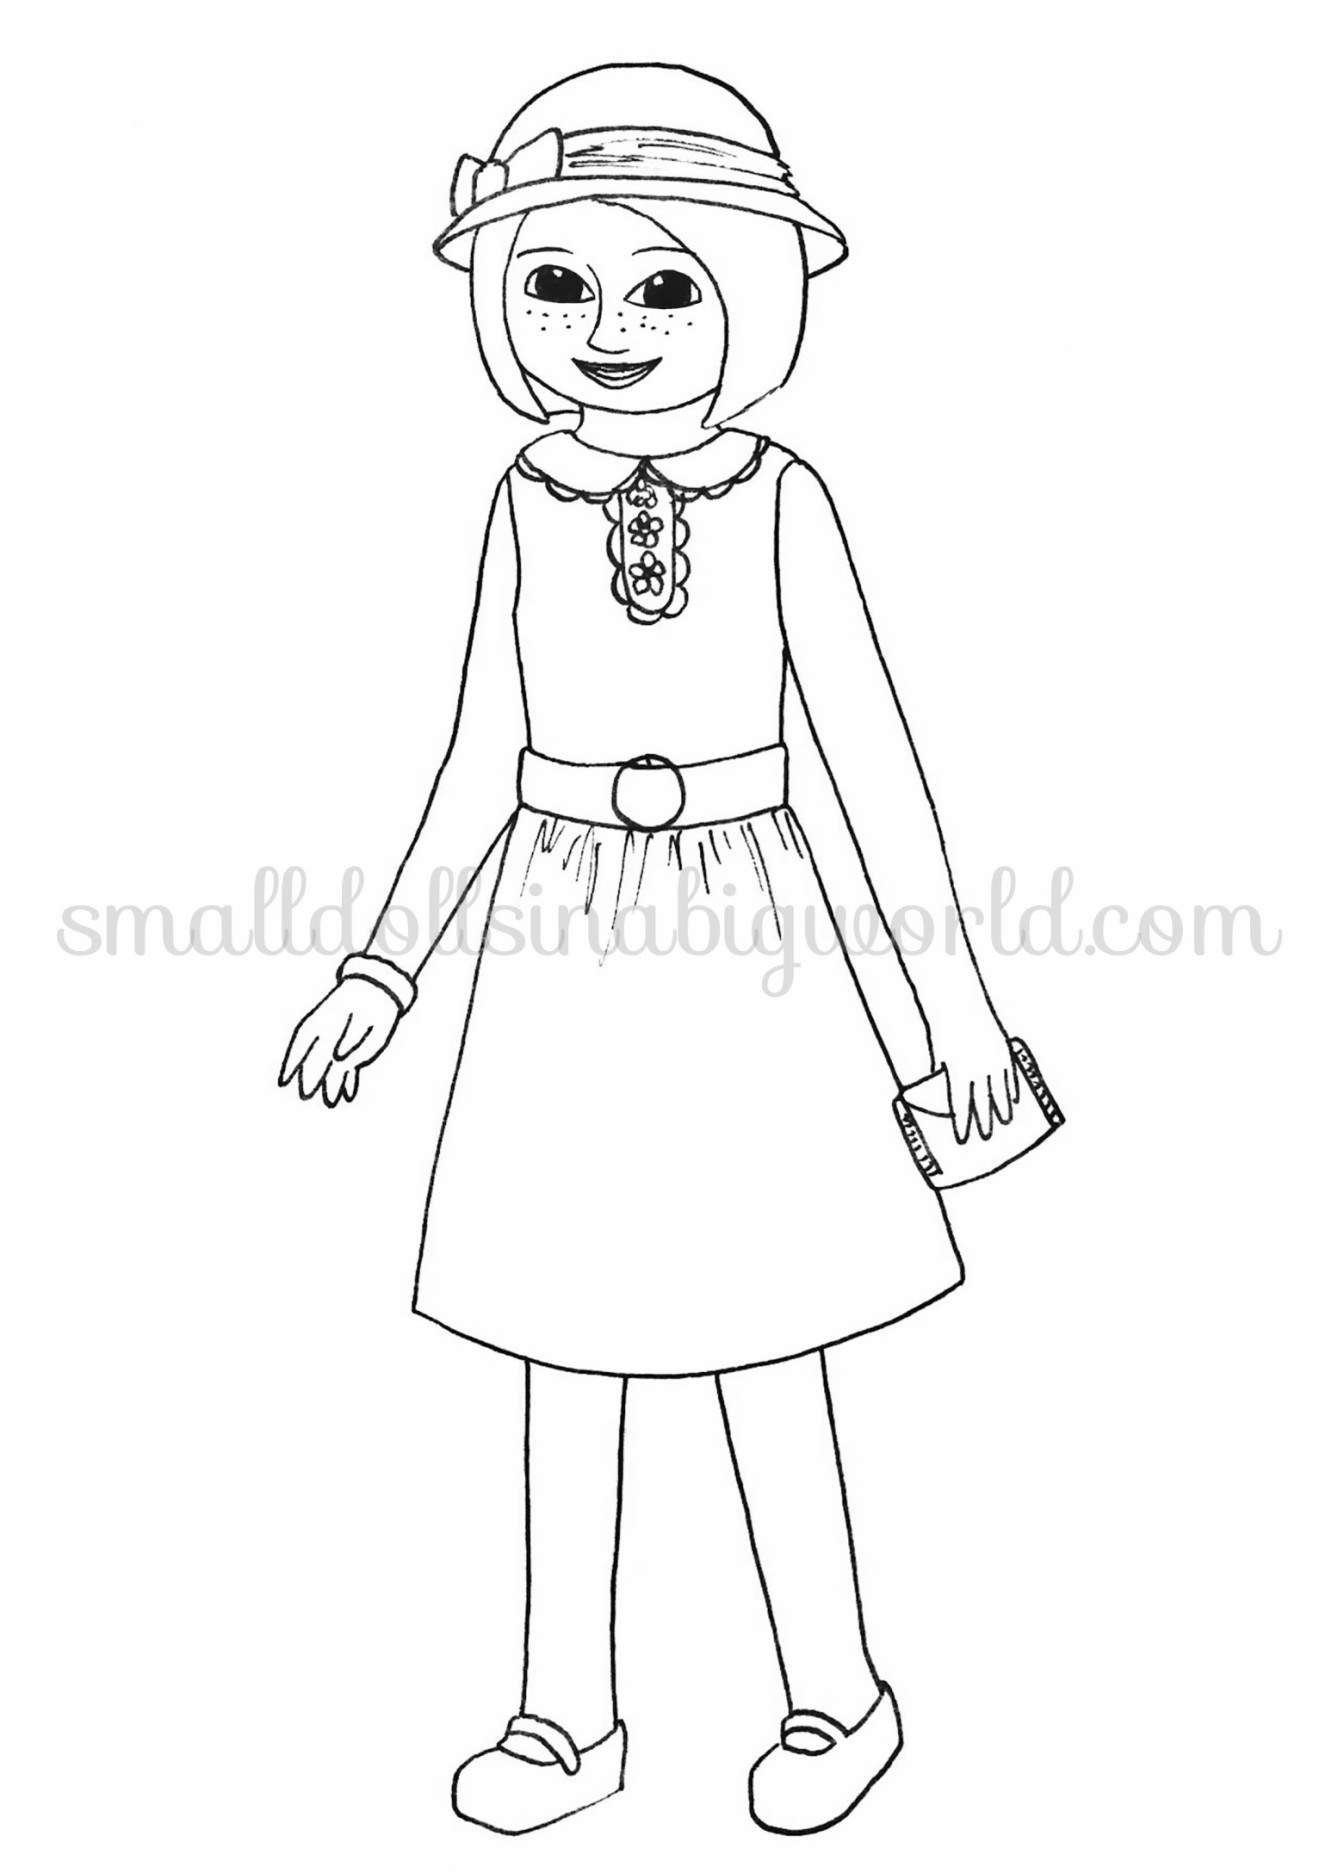 American Girl Coloring Pages Lea Coloring Ideas Coloring Ideasn Girl Pages Julie Printable Dolls Of